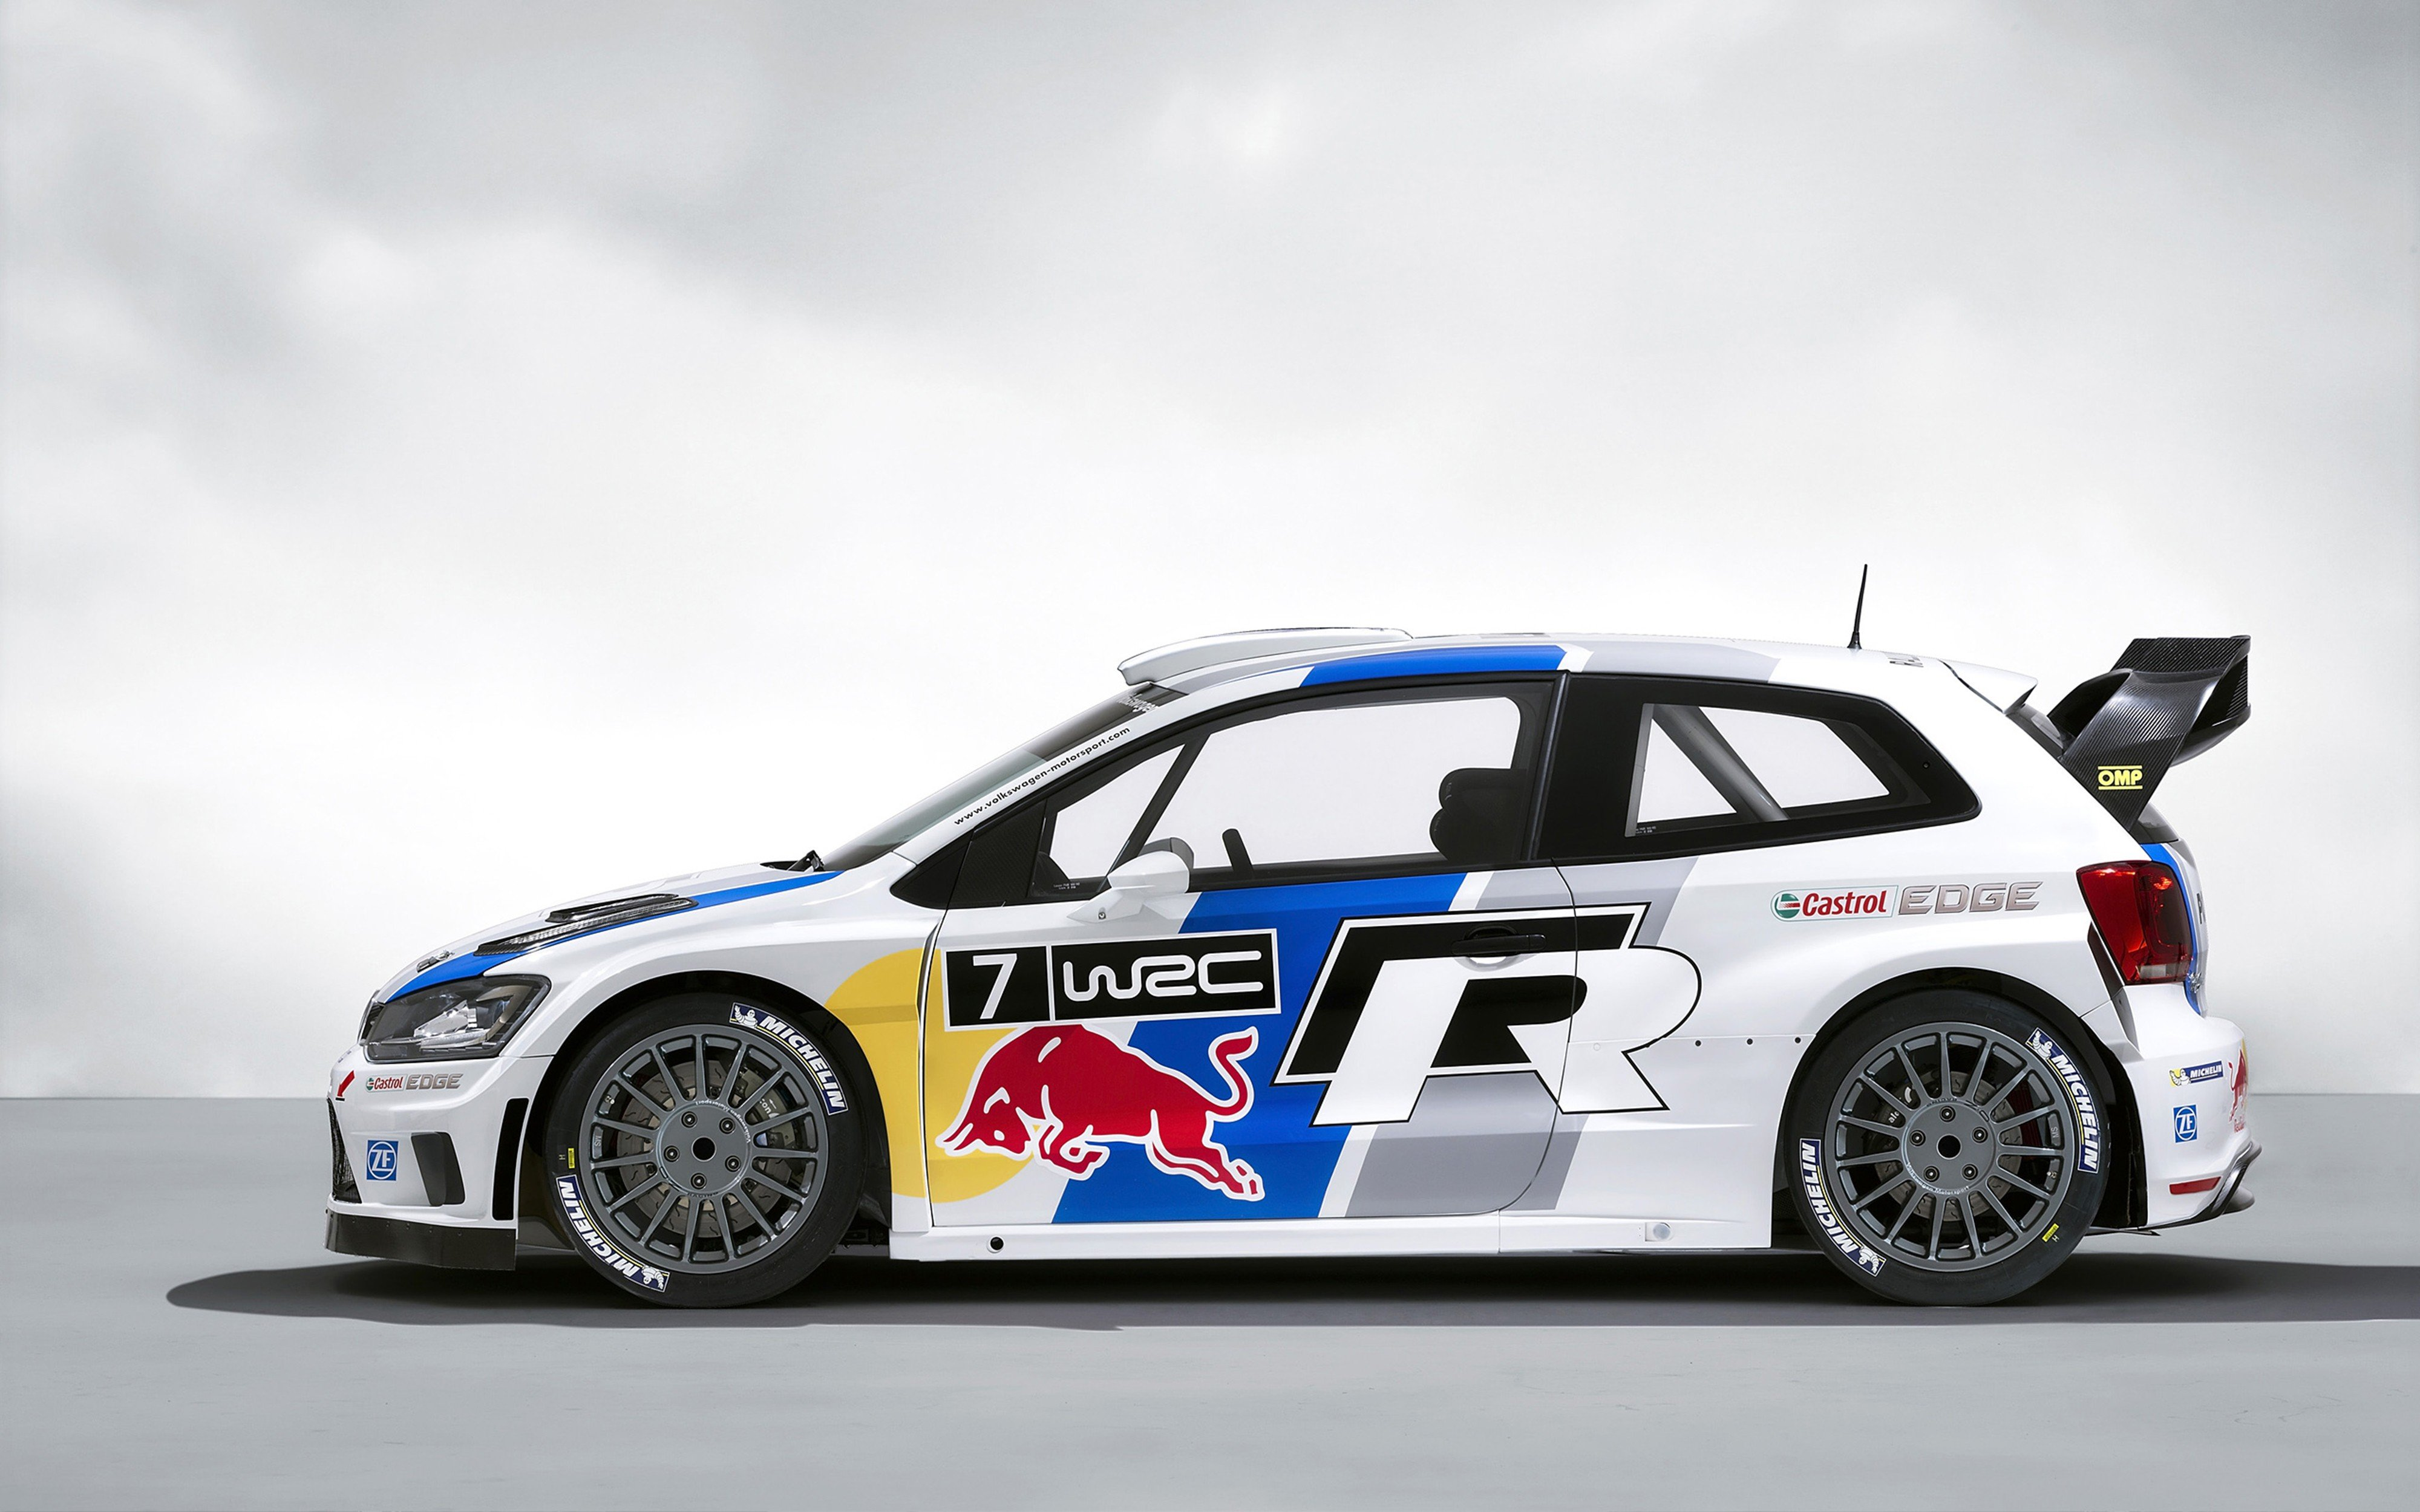 2013 volkswagen polo r wrc racing rally car race 4000x2500 wallpaper 4000x2500 350133. Black Bedroom Furniture Sets. Home Design Ideas